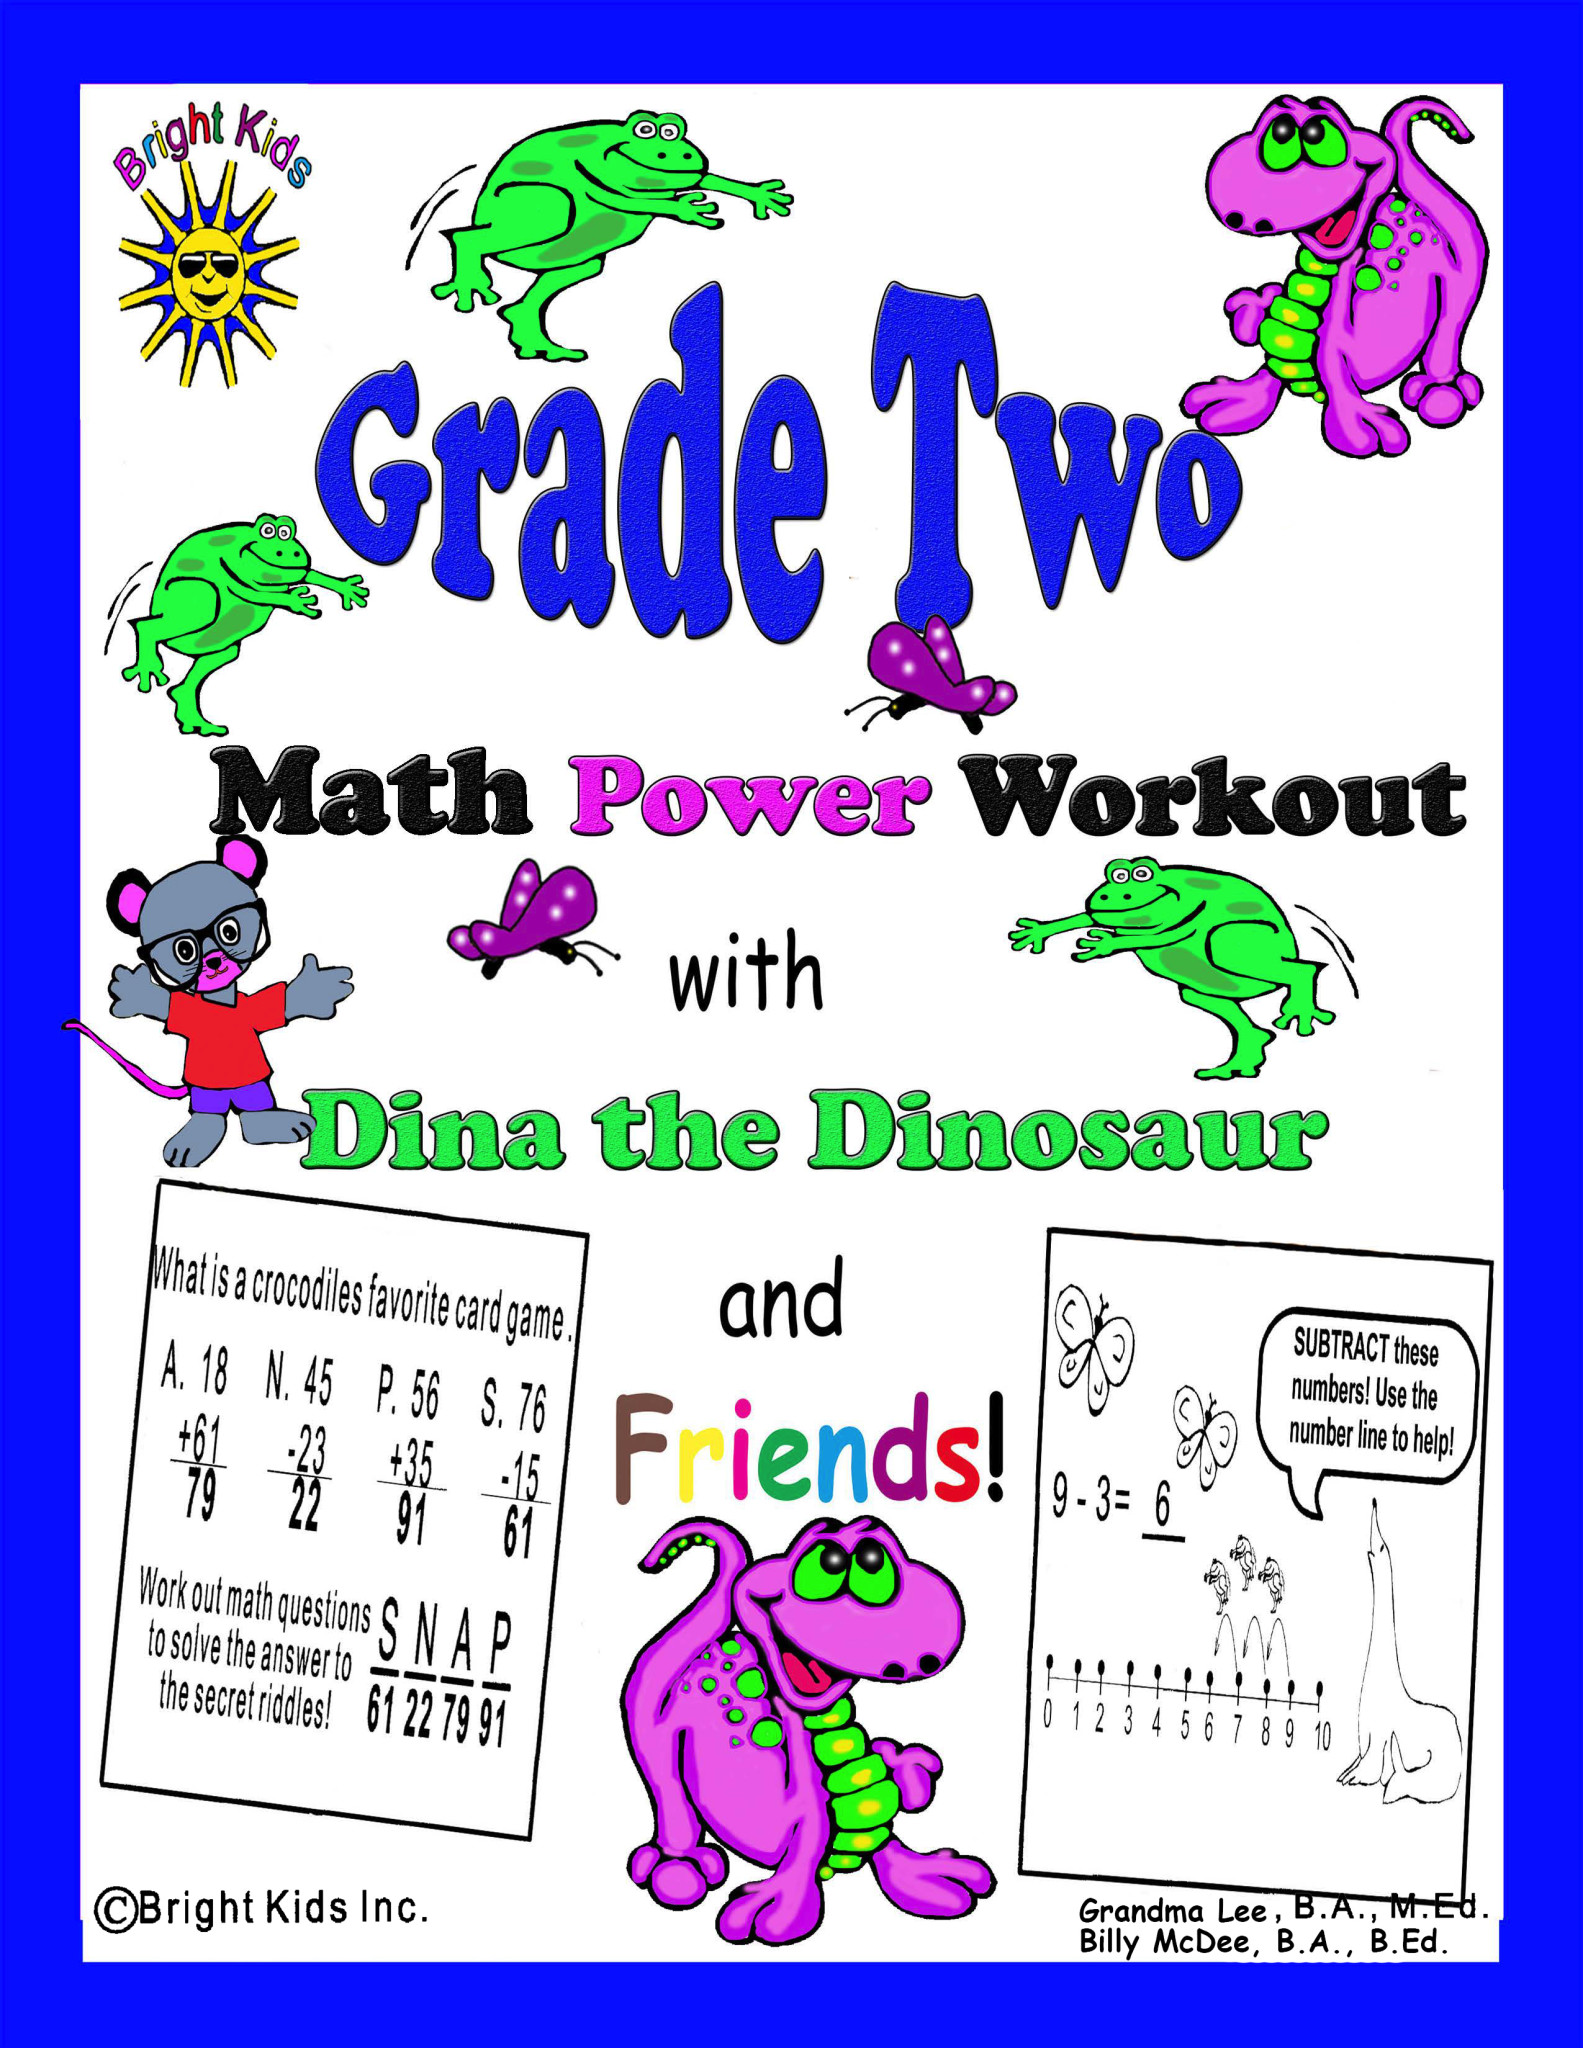 Grade 2 Math Power Workout